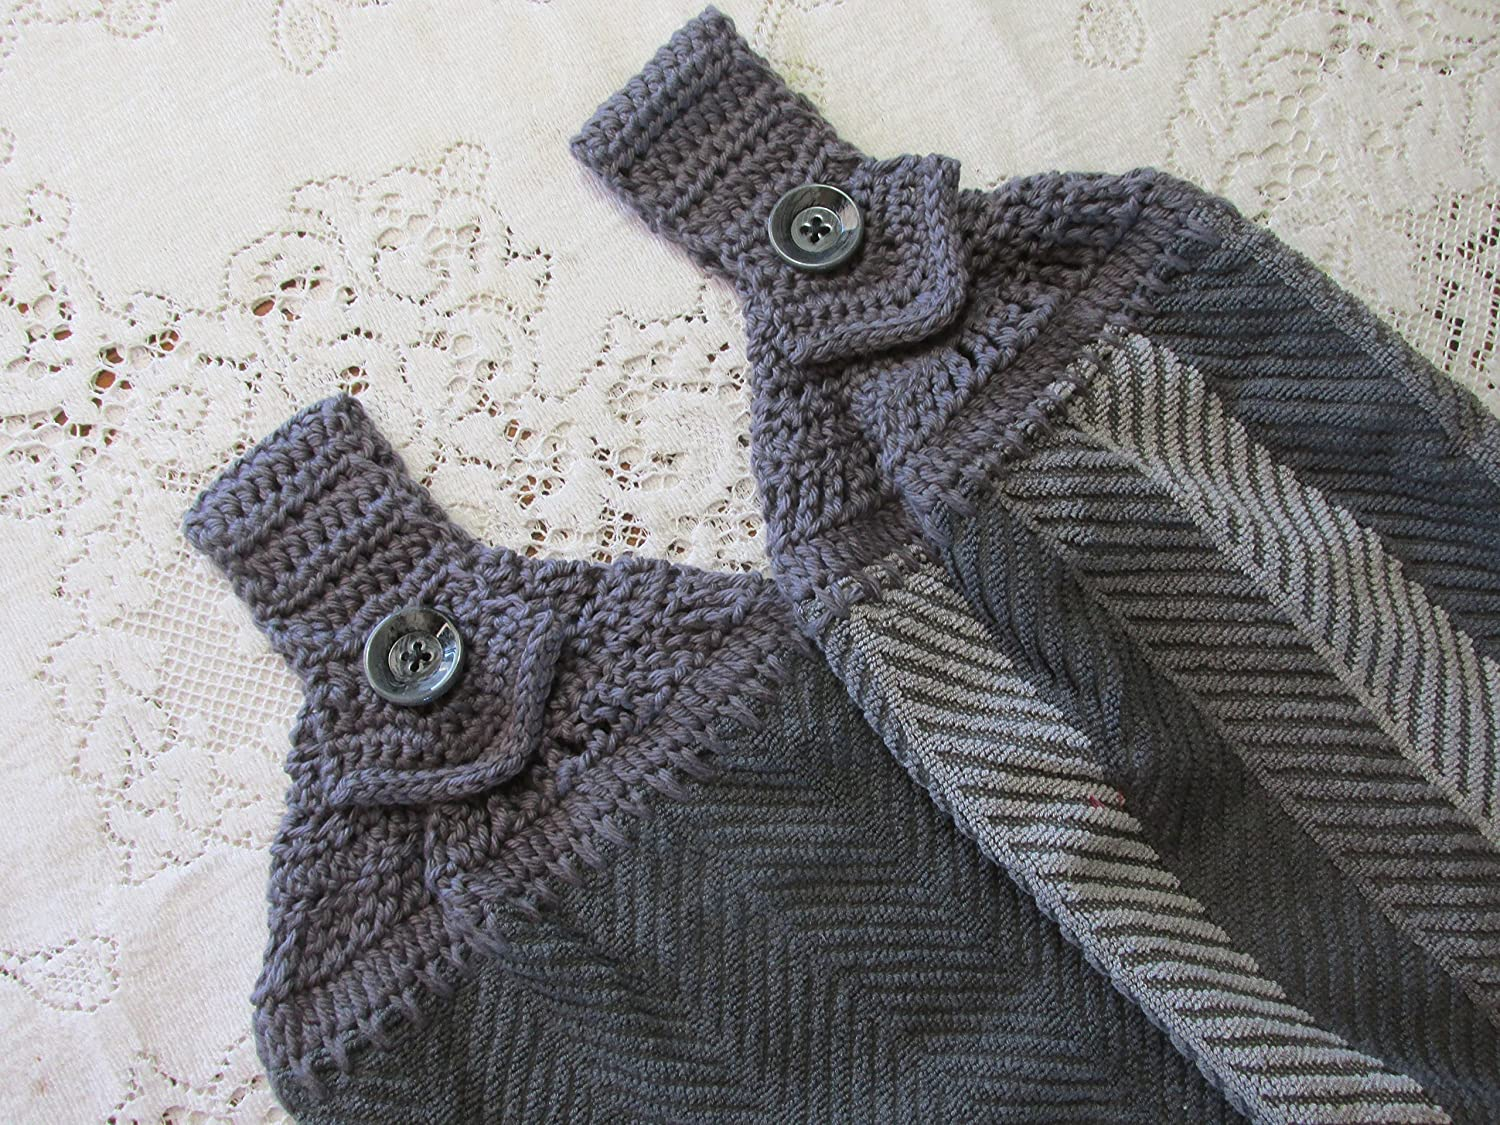 Set of 2 Gray Doubled Chevron Design Hanging Kitchen Towels with Gray Cotton Crochet Top - Best Quality